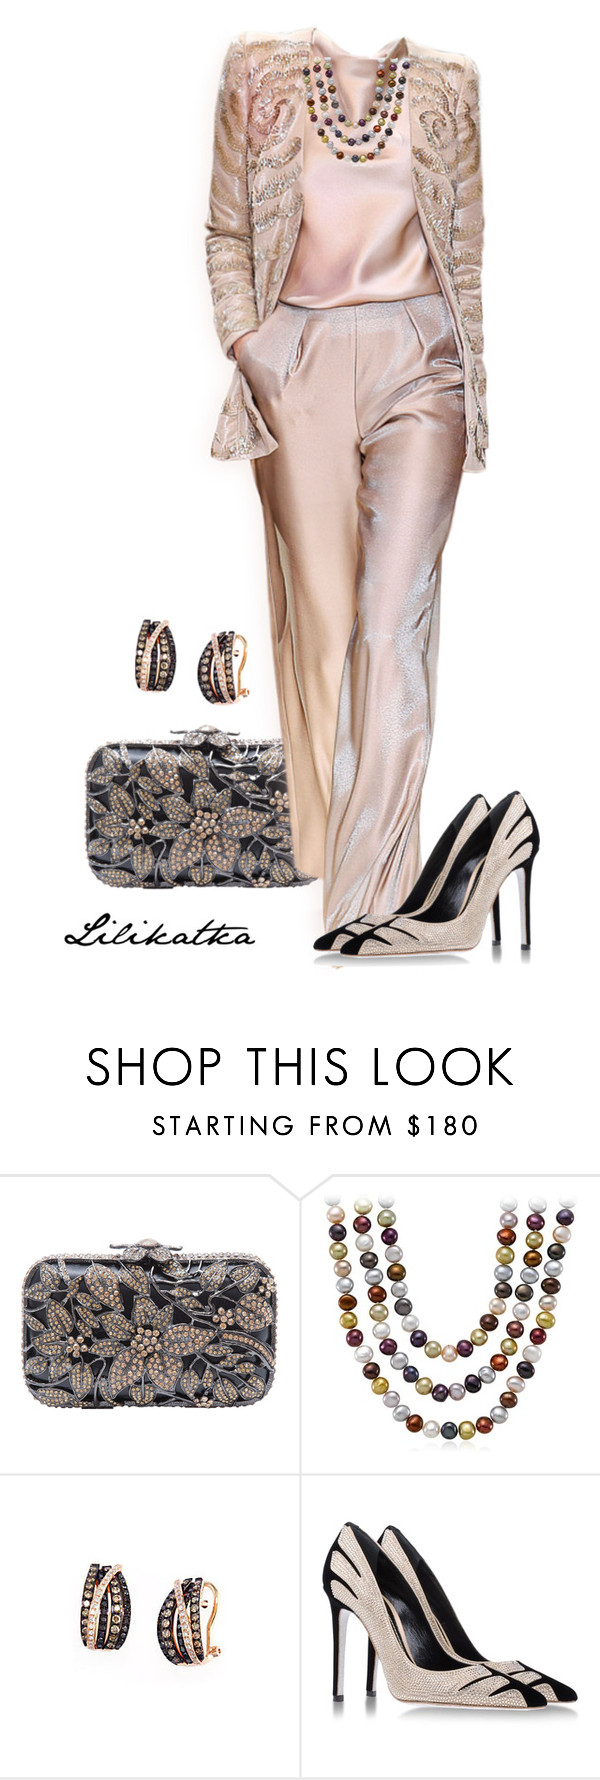 """Pivonka#897"" by lilikatka ❤ liked on Polyvore featuring Armani Privé, Blue Nile, Lord & Taylor and René Caovilla"